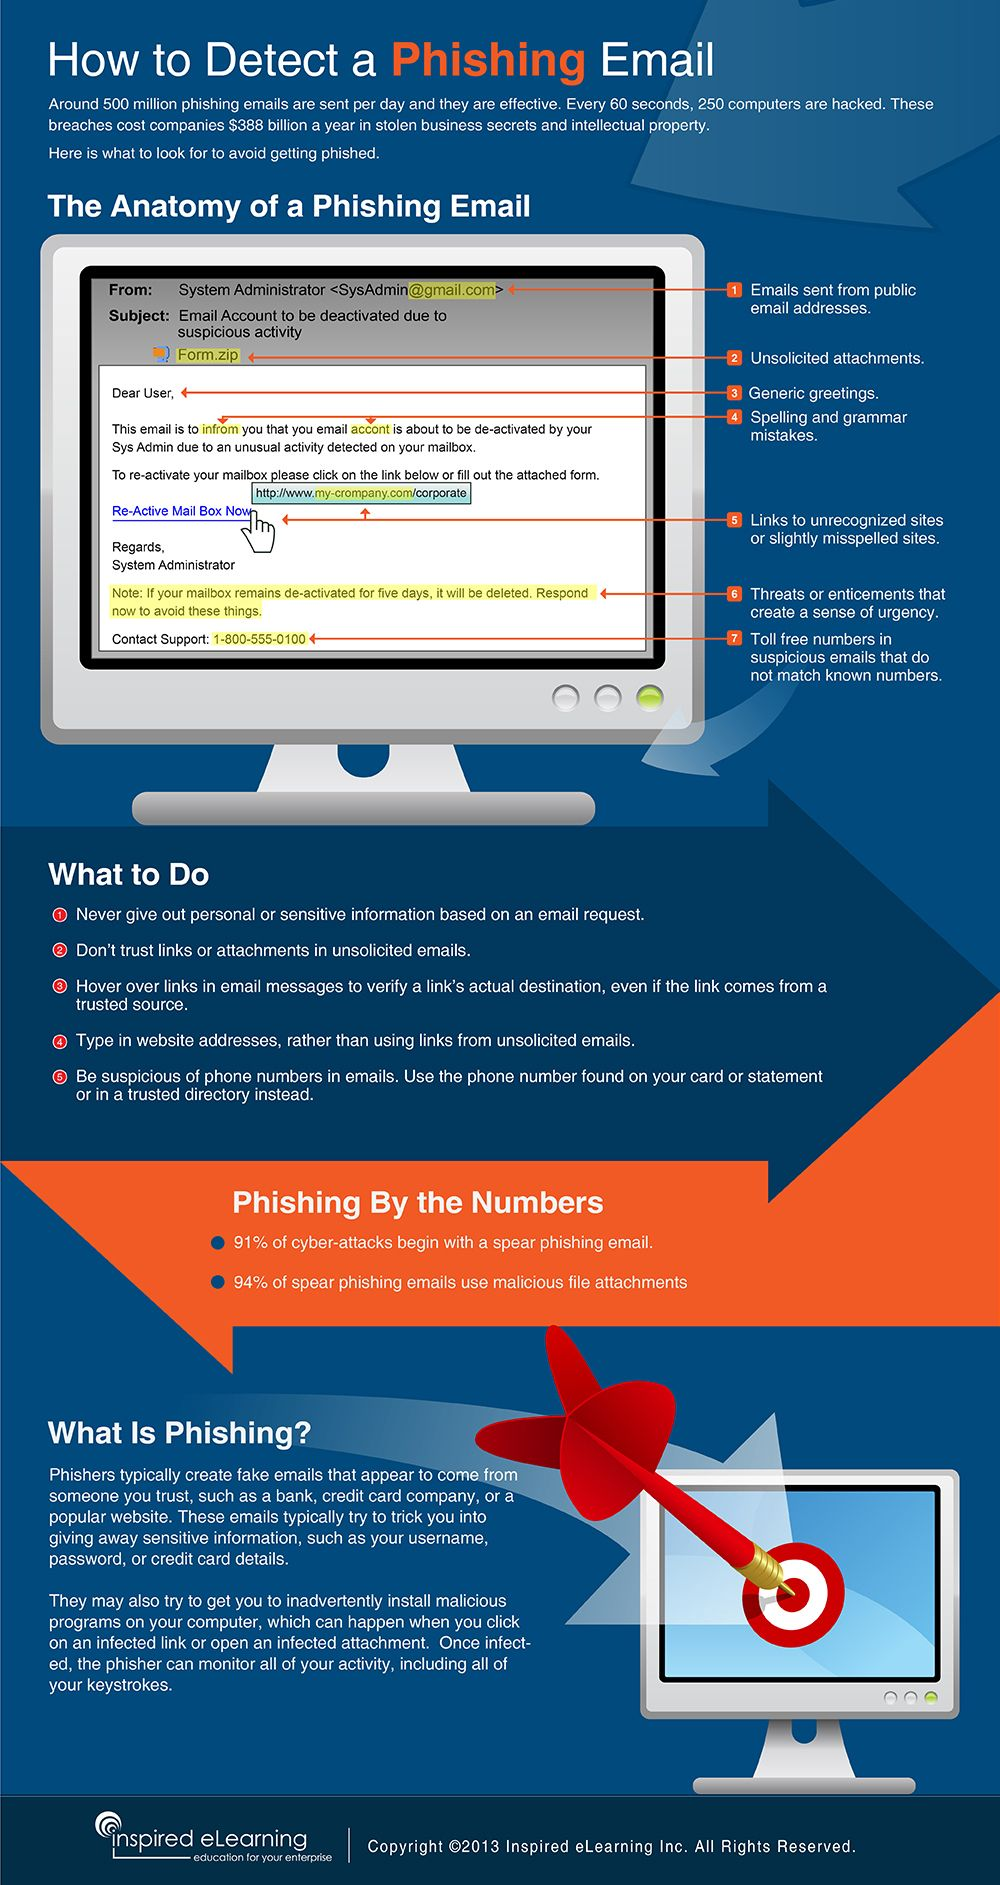 What A Phishing Email Looks Like And How To Detect One